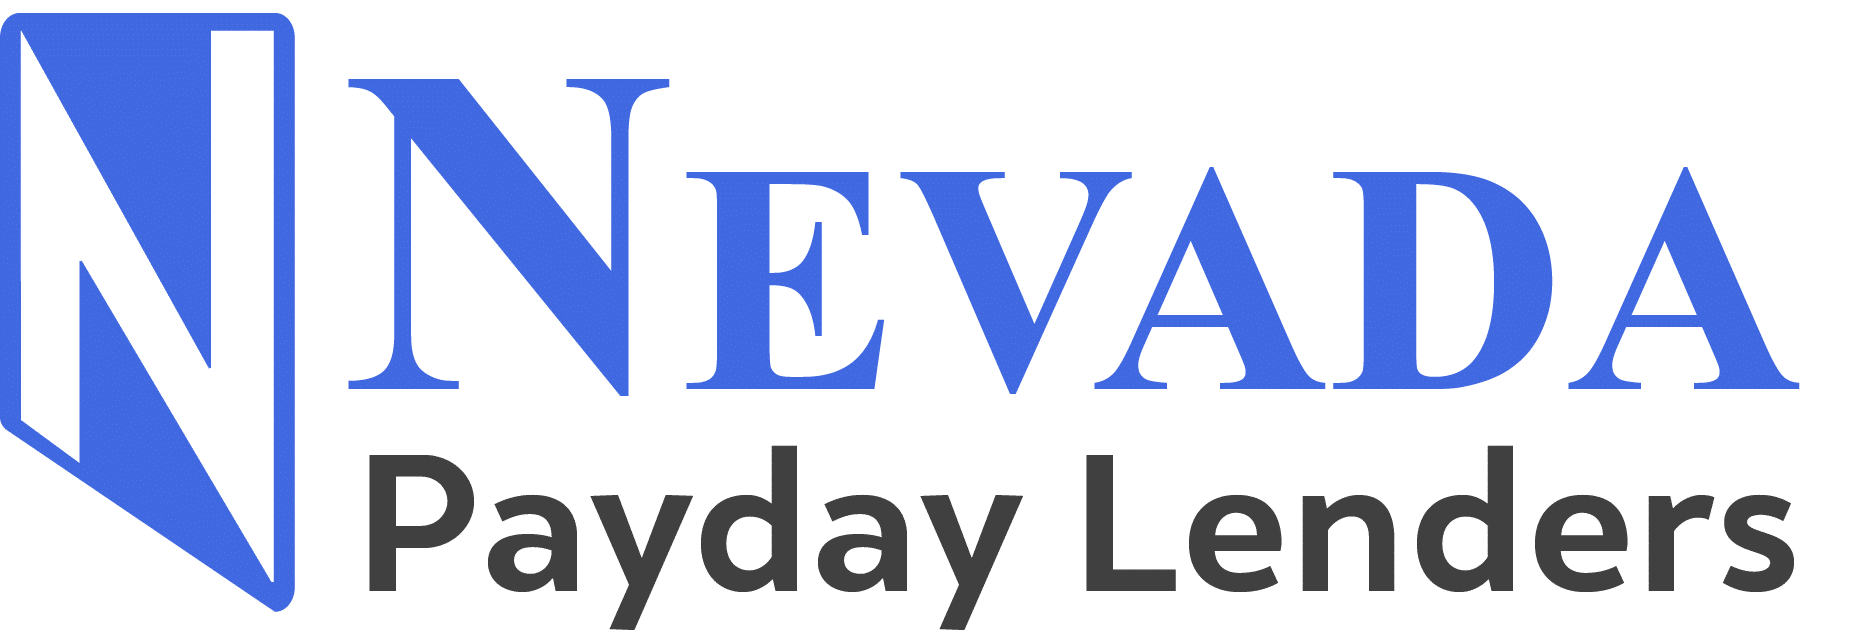 Online Installment Loans For Nevada Residents